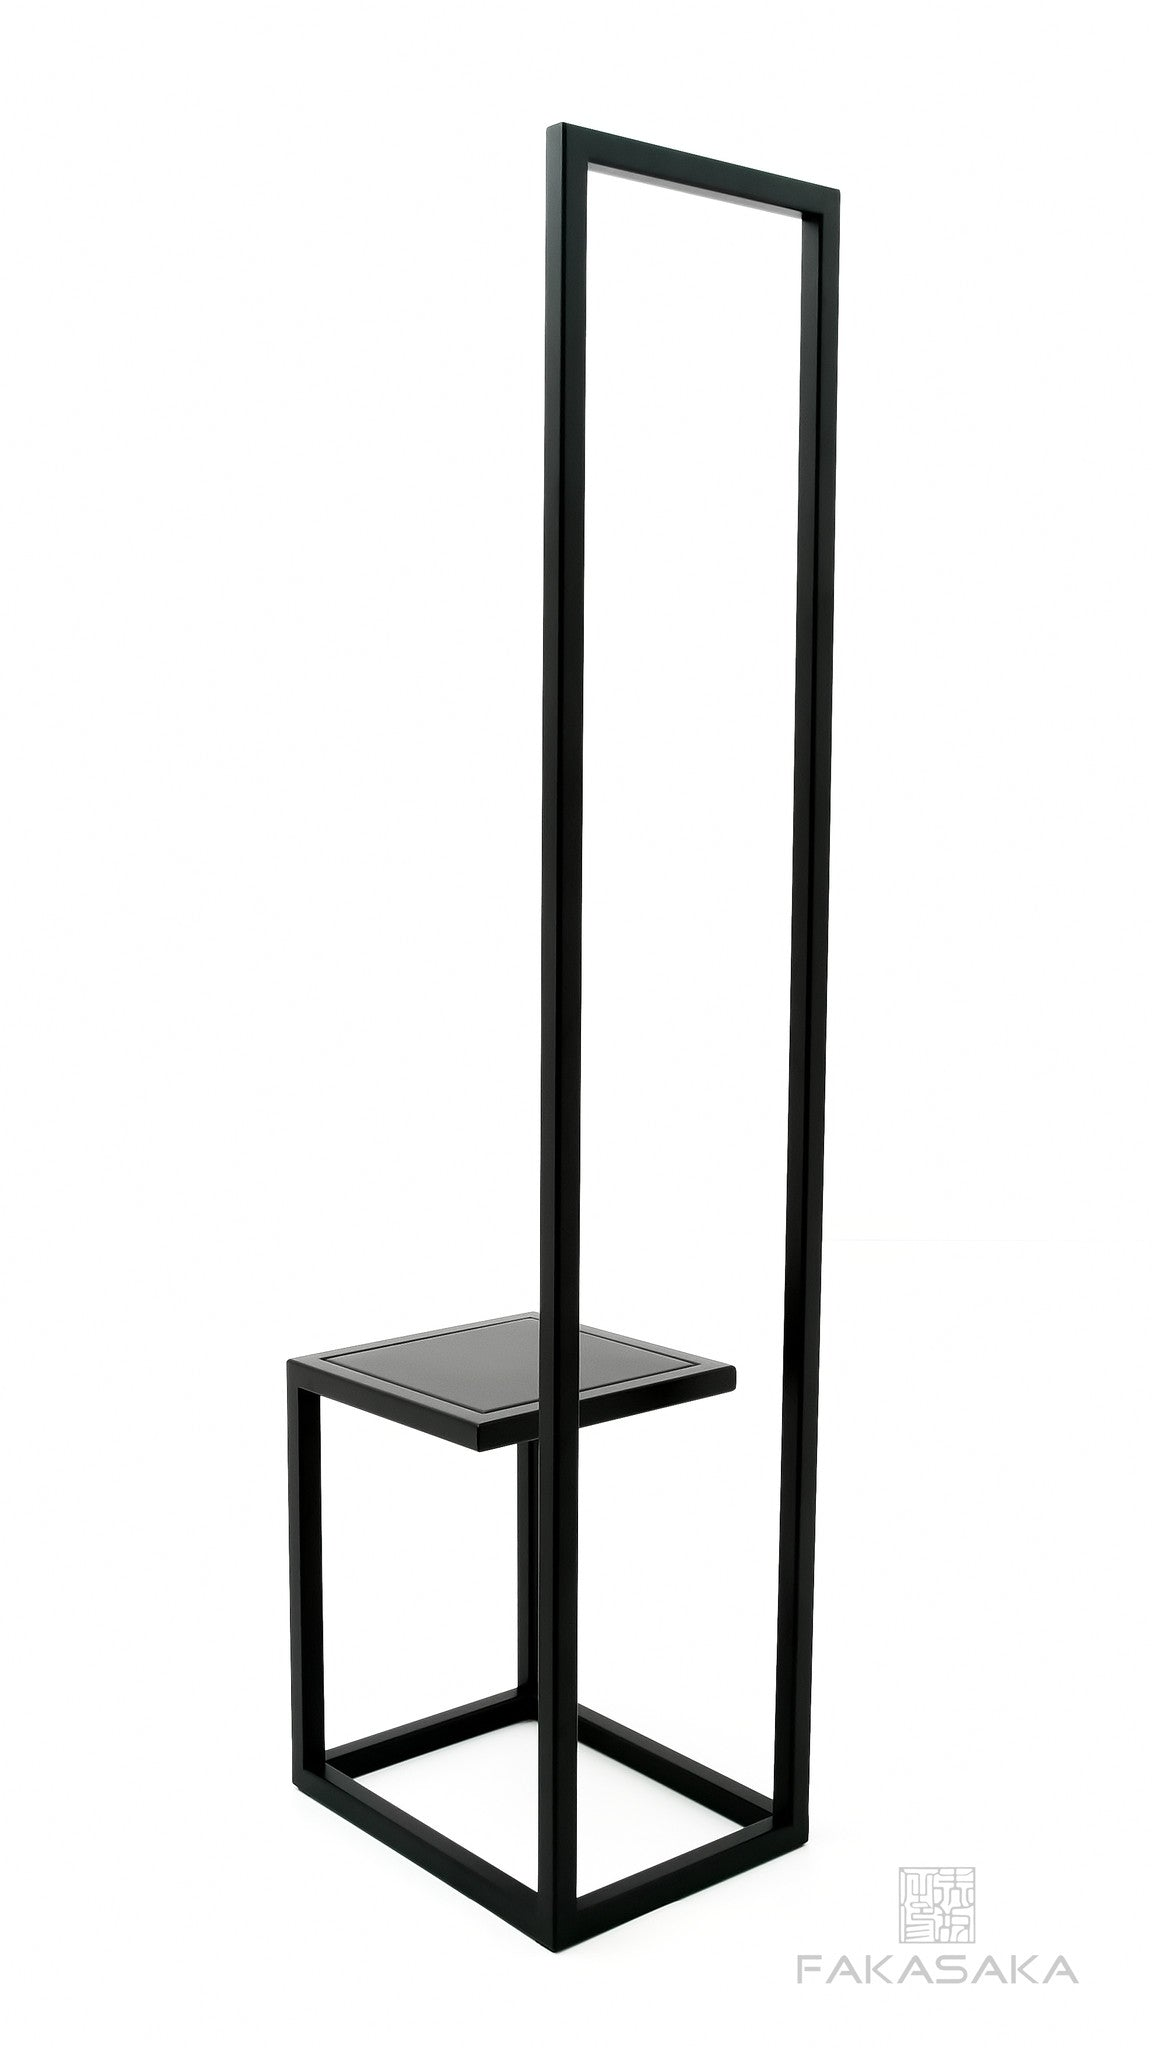 FA22 CHAIR<br><br>STAINLESS STEEL<br>BLACK